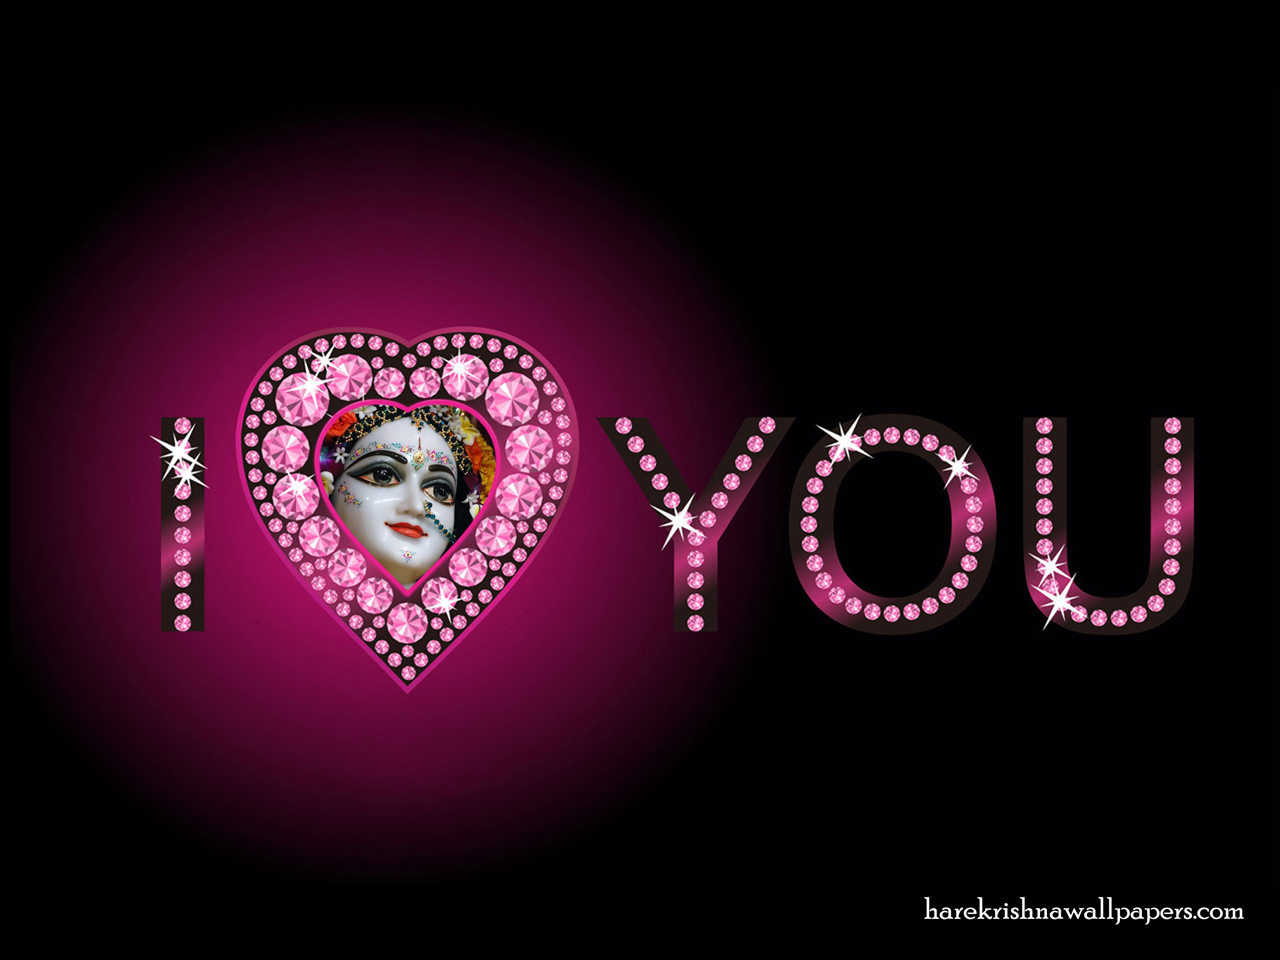 I Love You Radharani Wallpaper (013) Size 1280x960 Download